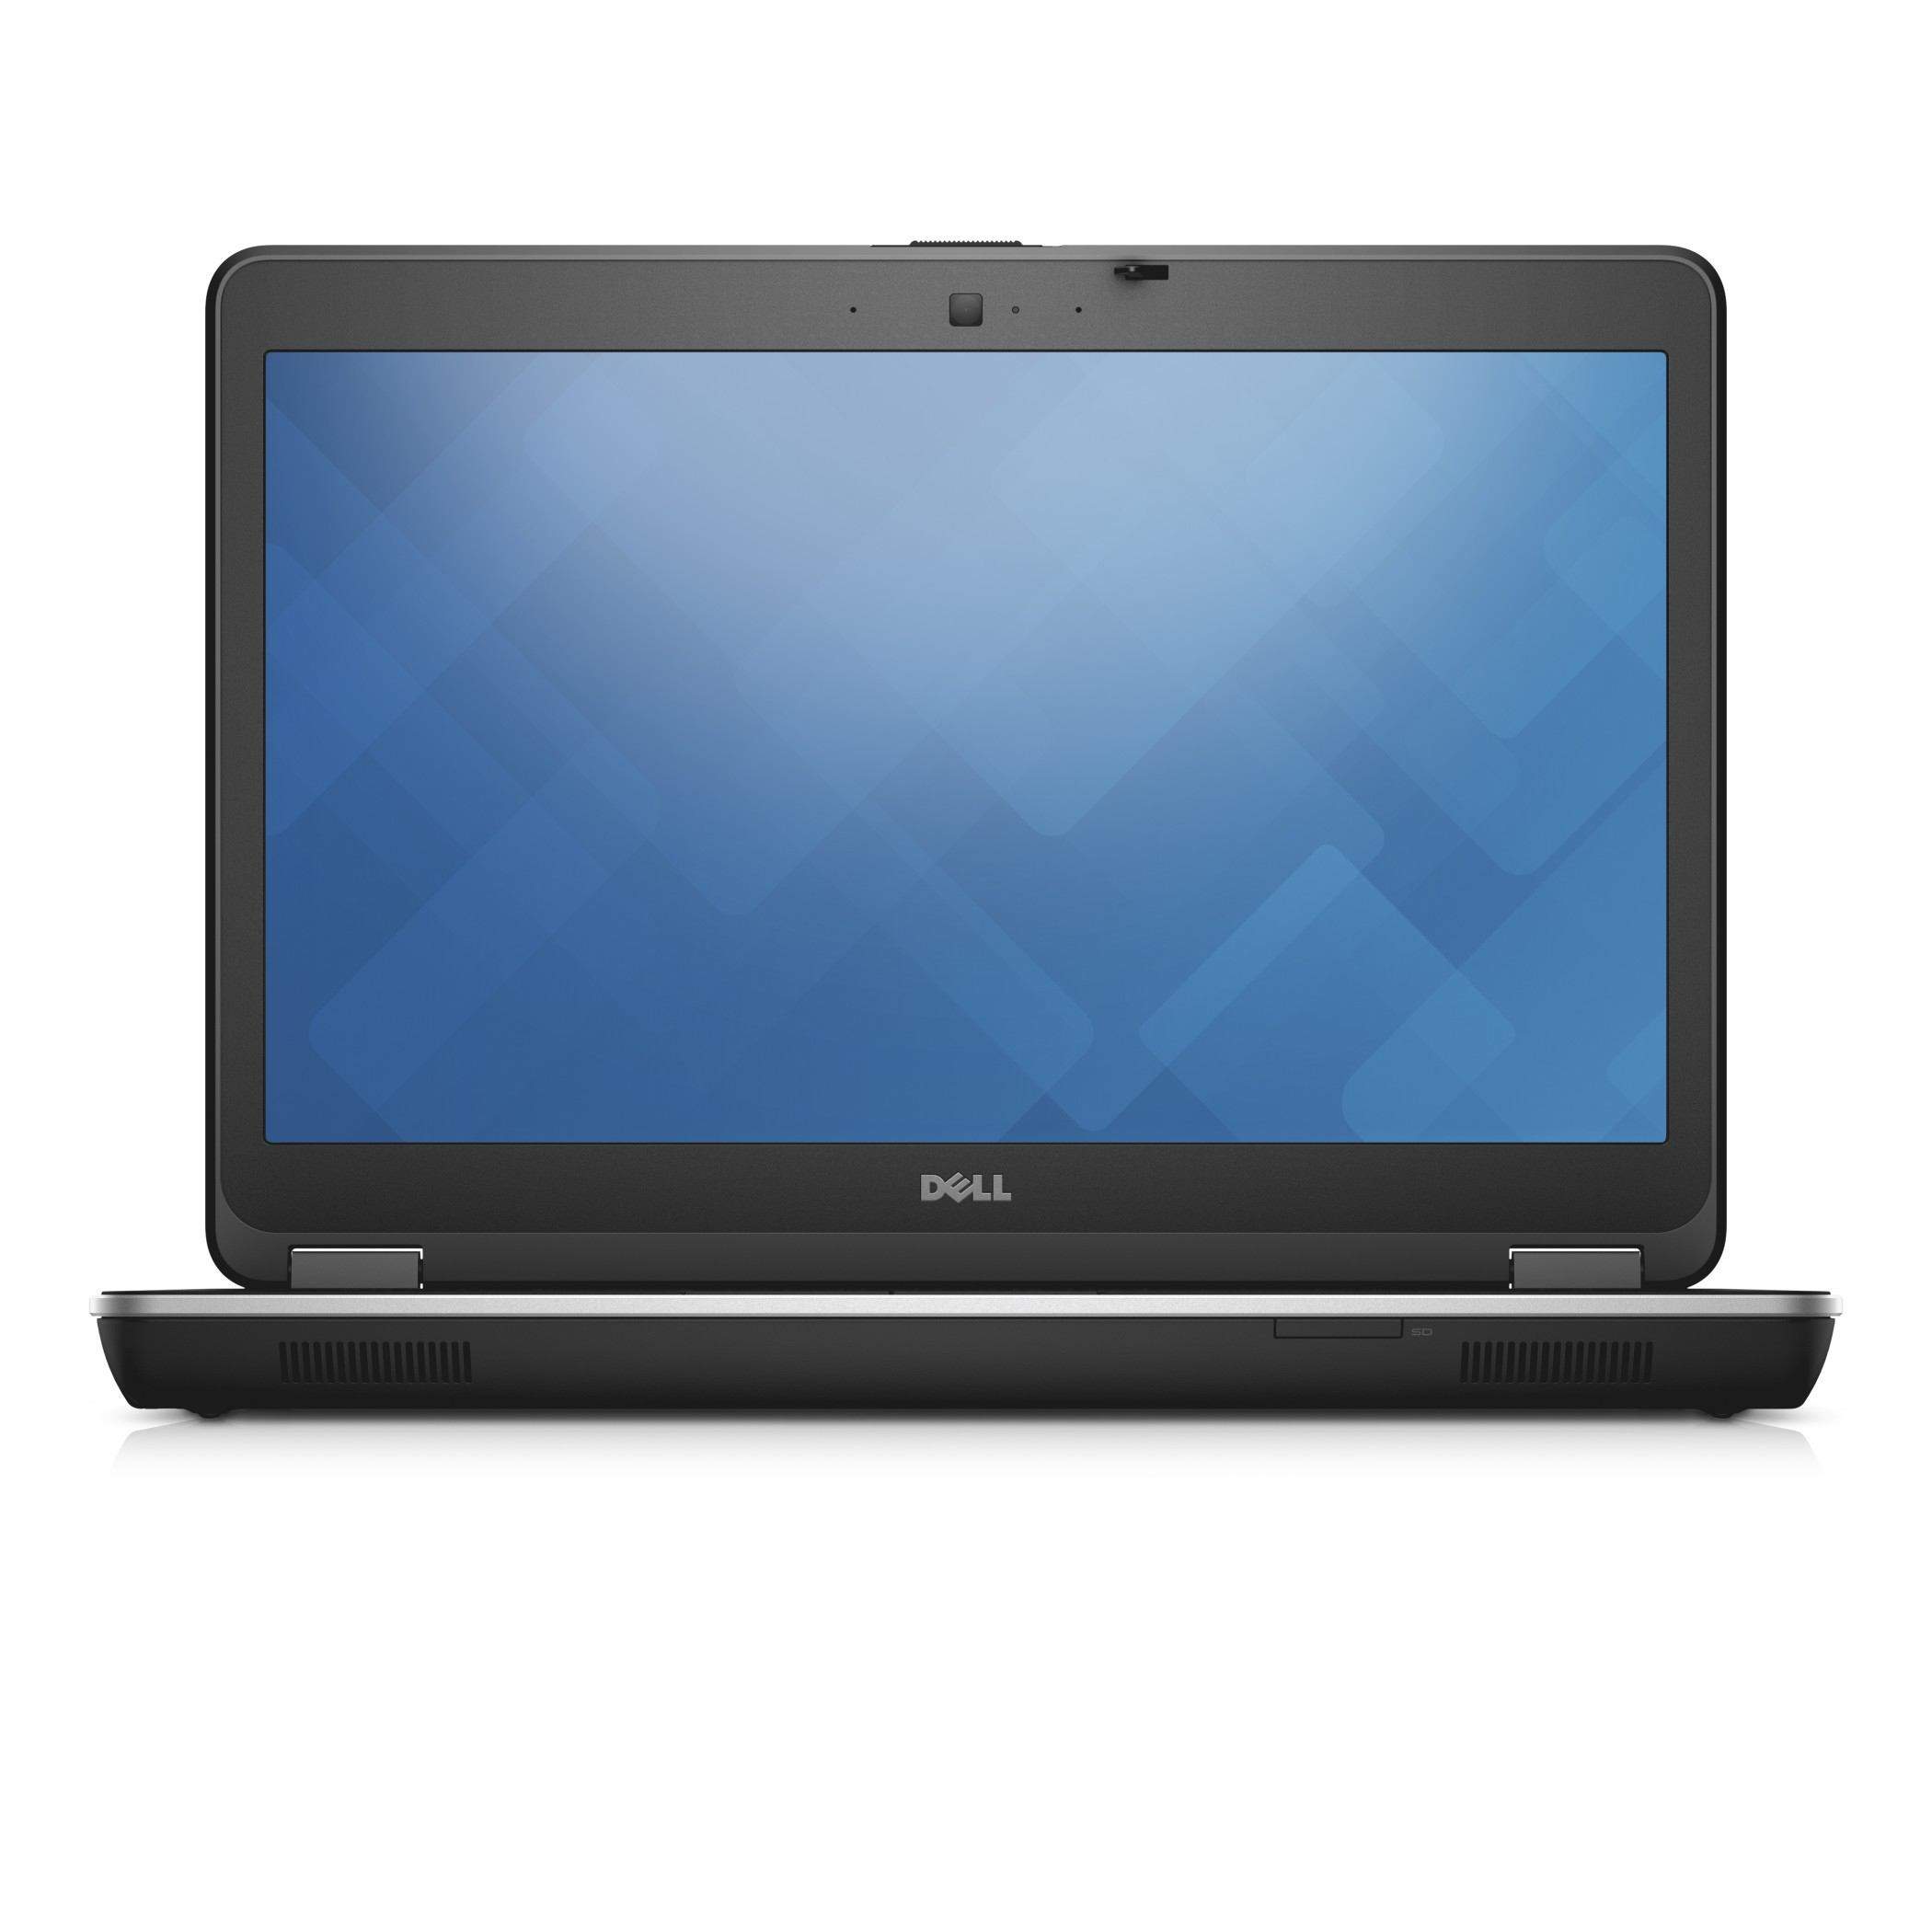 DELL 6440-3210 - DELL Latitude E6440 2 6GHz i5-4300M 14